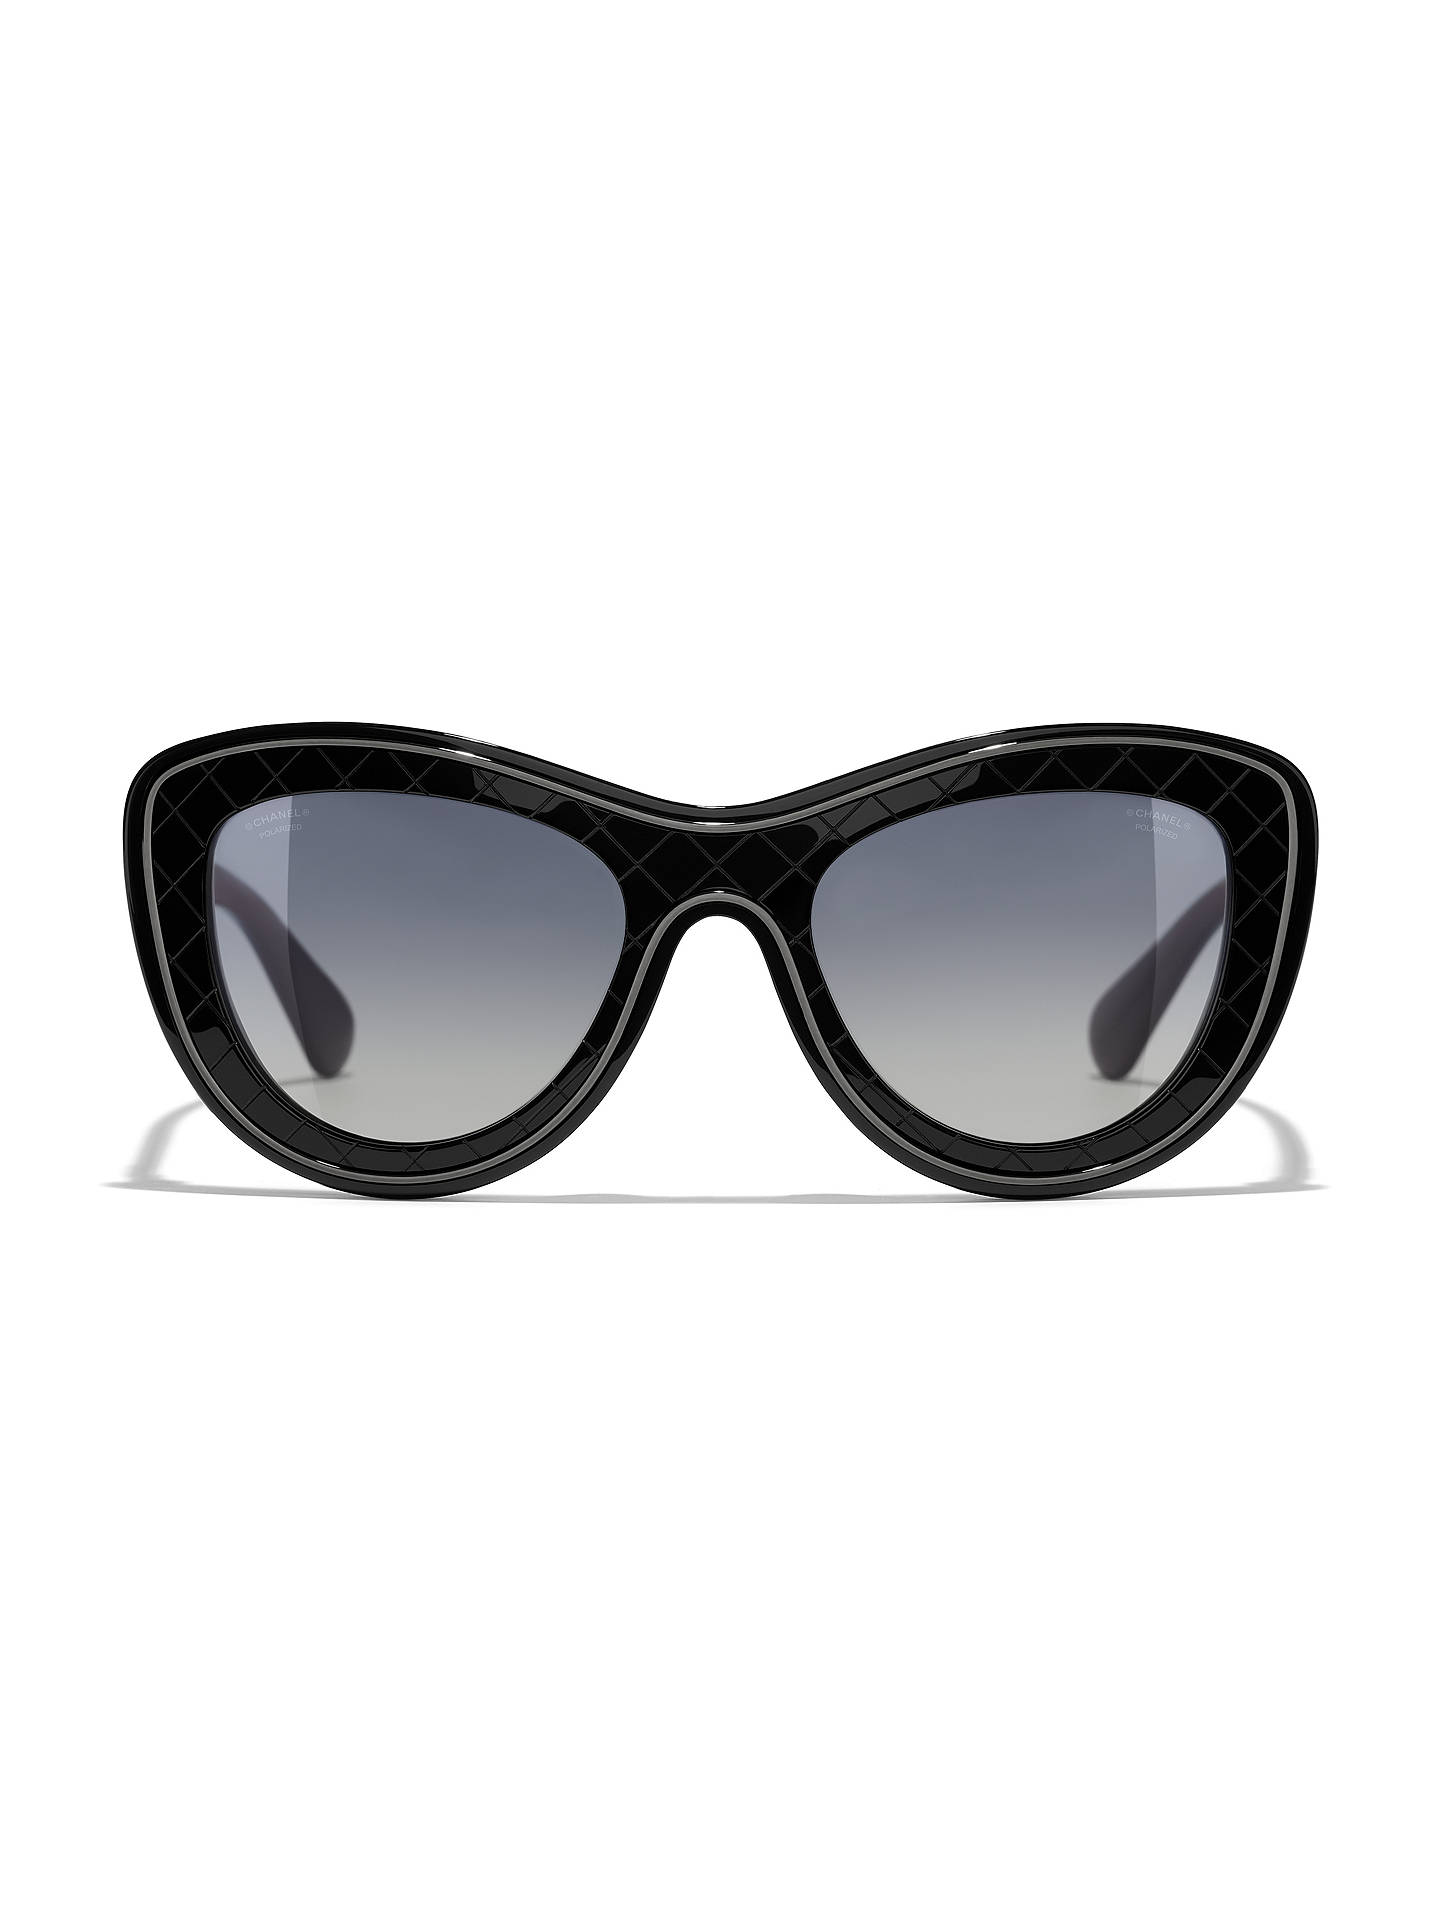 Buy CHANEL Butterfly Sunglasses CH5397 Black/Grey Gradient Online at johnlewis.com